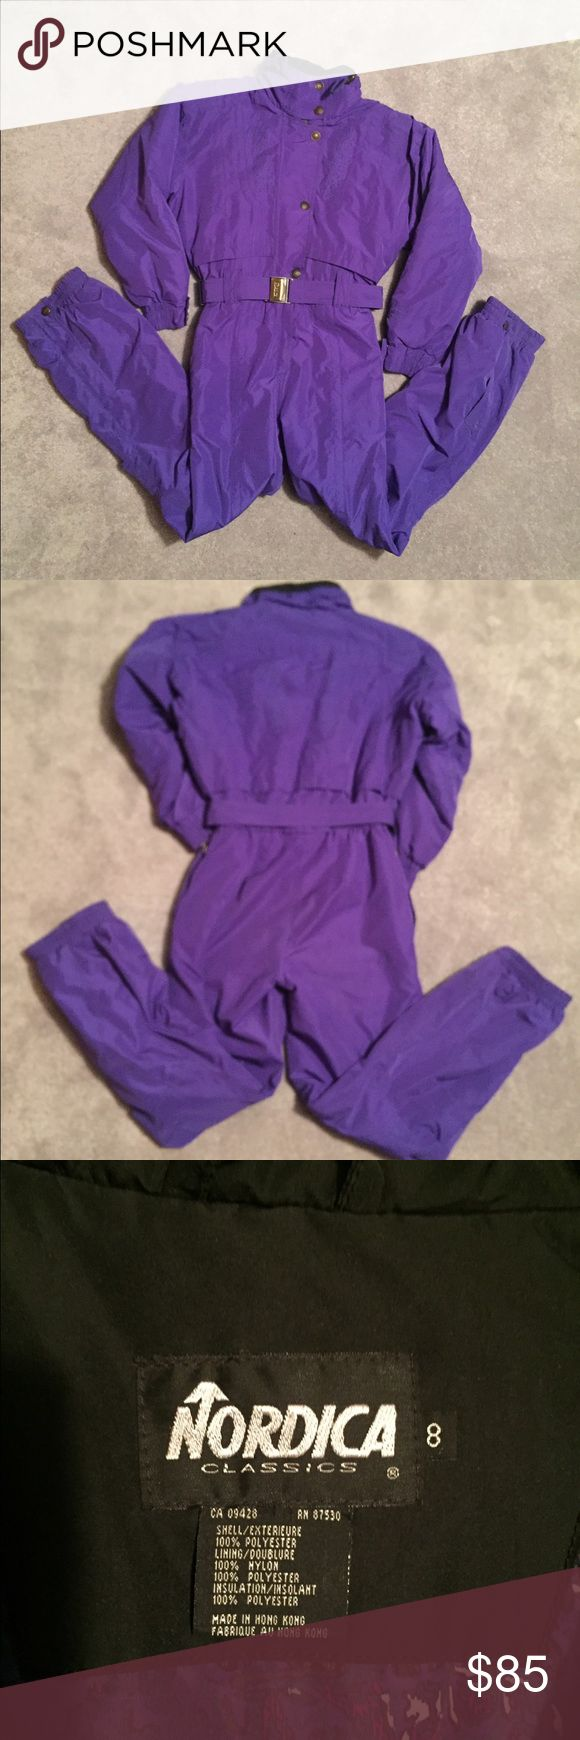 Women's vintage NORDICA classic ski snowsuit sz 8 Stay Warm in the slopes with this Very stylish and vintage Zip up Women's ski snowsuit! Belted. Purple. Gently worn. Looks brand new. Embroidered on front and back. Cute buttons on front and sleeves and legs. Zip legs for boots under the buttons. Zip front and button flap. Stand up collar. Zip outside pockets. Two inside pockets , one with velcro. Polyester/nylon . Machine washable. Size 8 Nordica Jackets & Coats